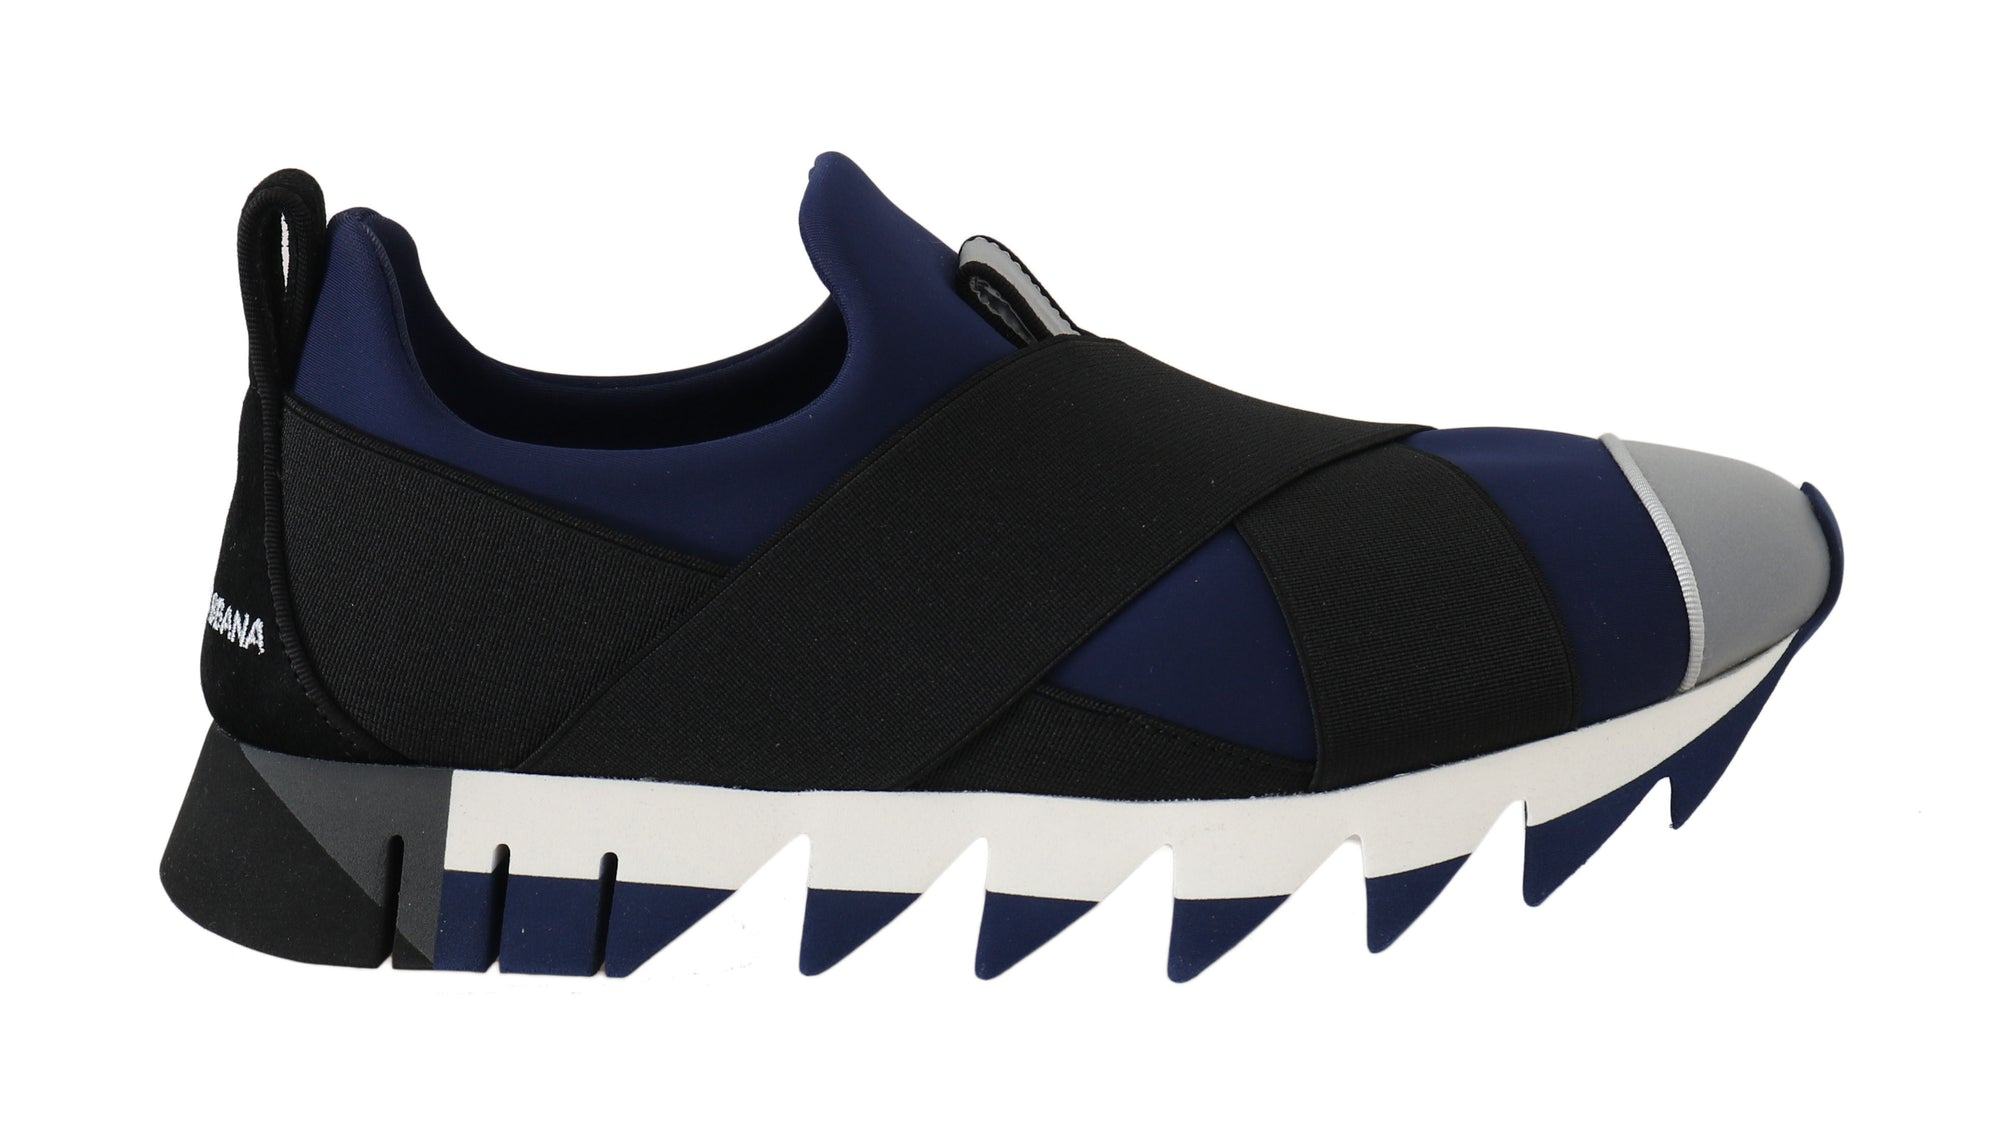 Neoprene Black Blue Strap Sneakers